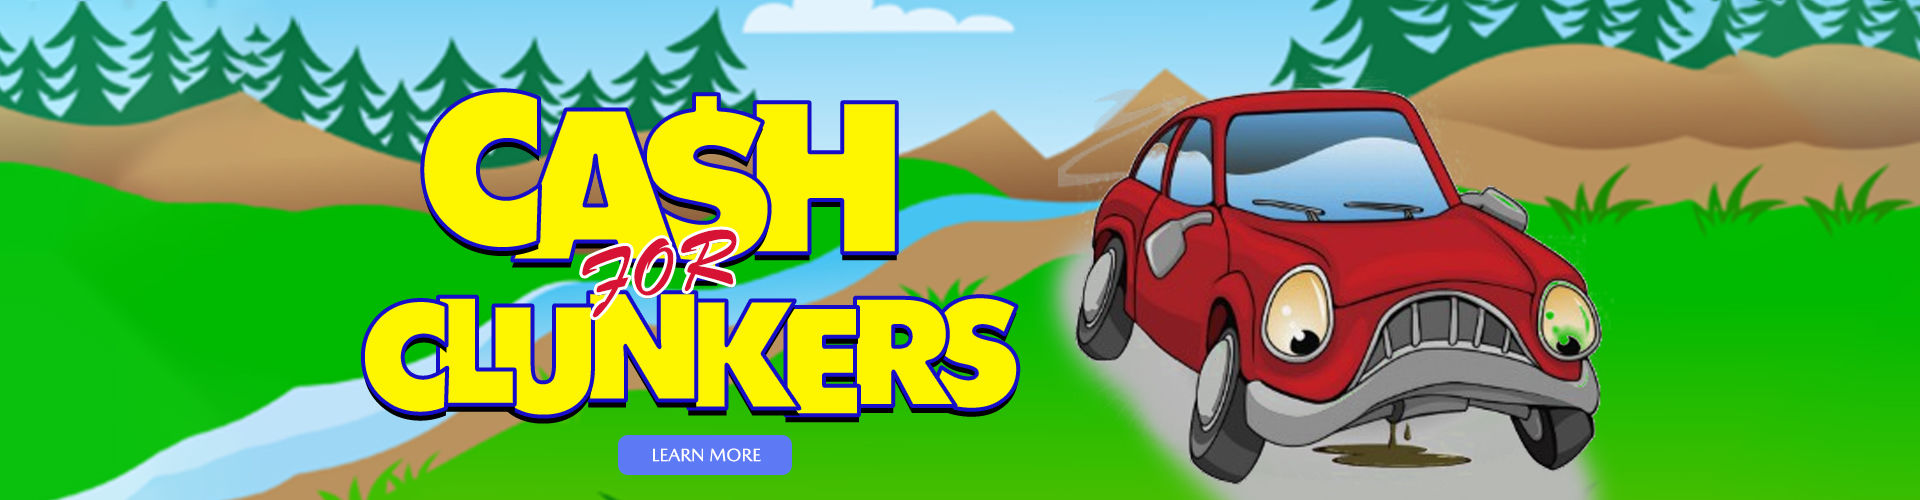 Cash for Clunkers Slider